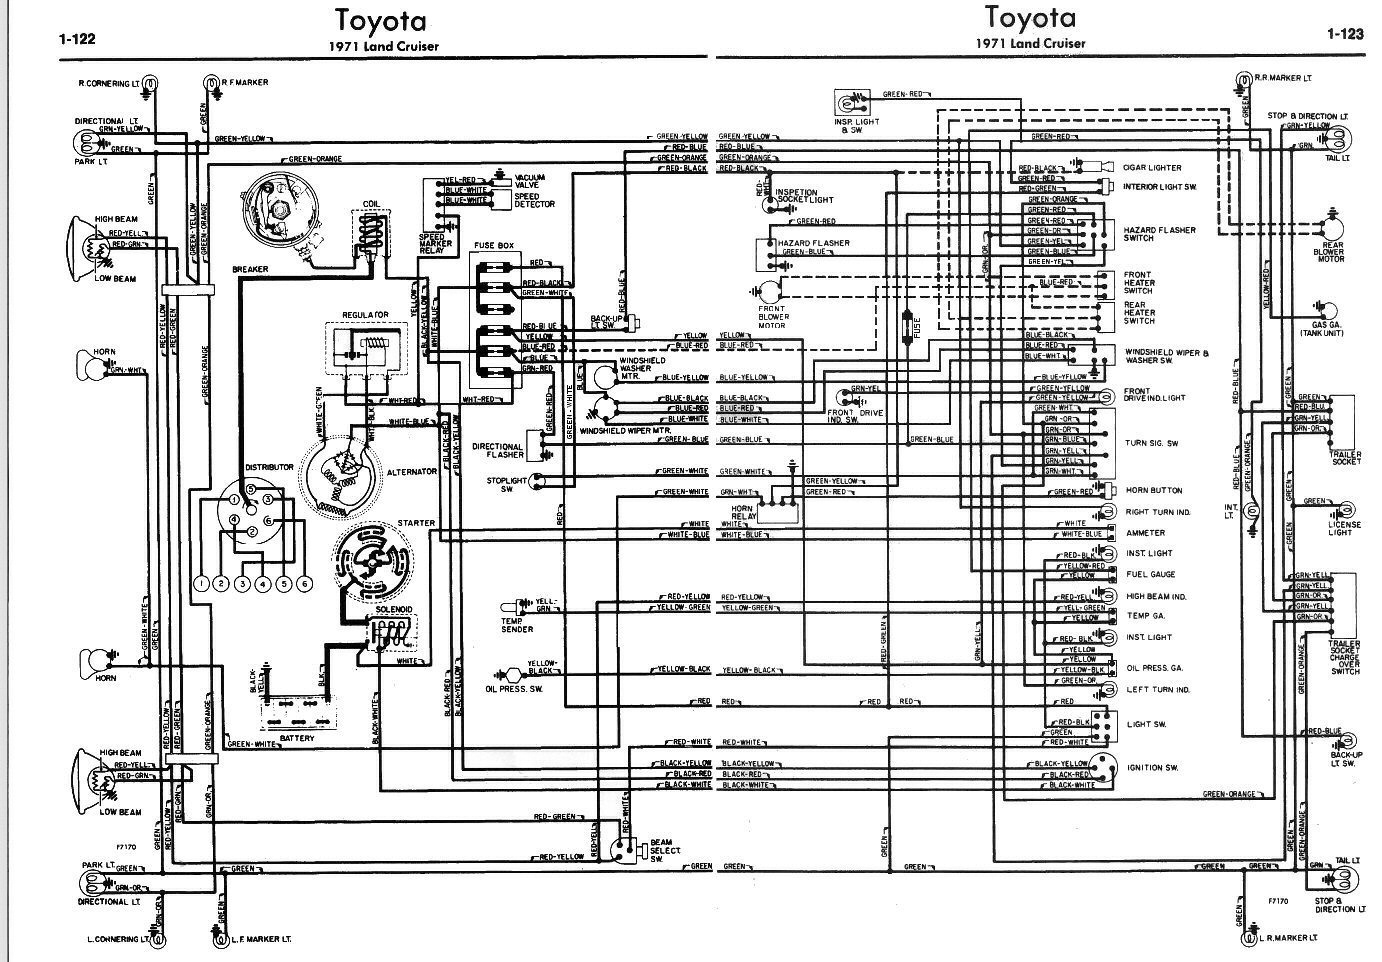 1971 Fj40 Wiring Harness Diy Enthusiasts Diagrams Cruiser For Gm Power Steering Aftermarket Rh Banyan Palace Com 1972 Toyota Land